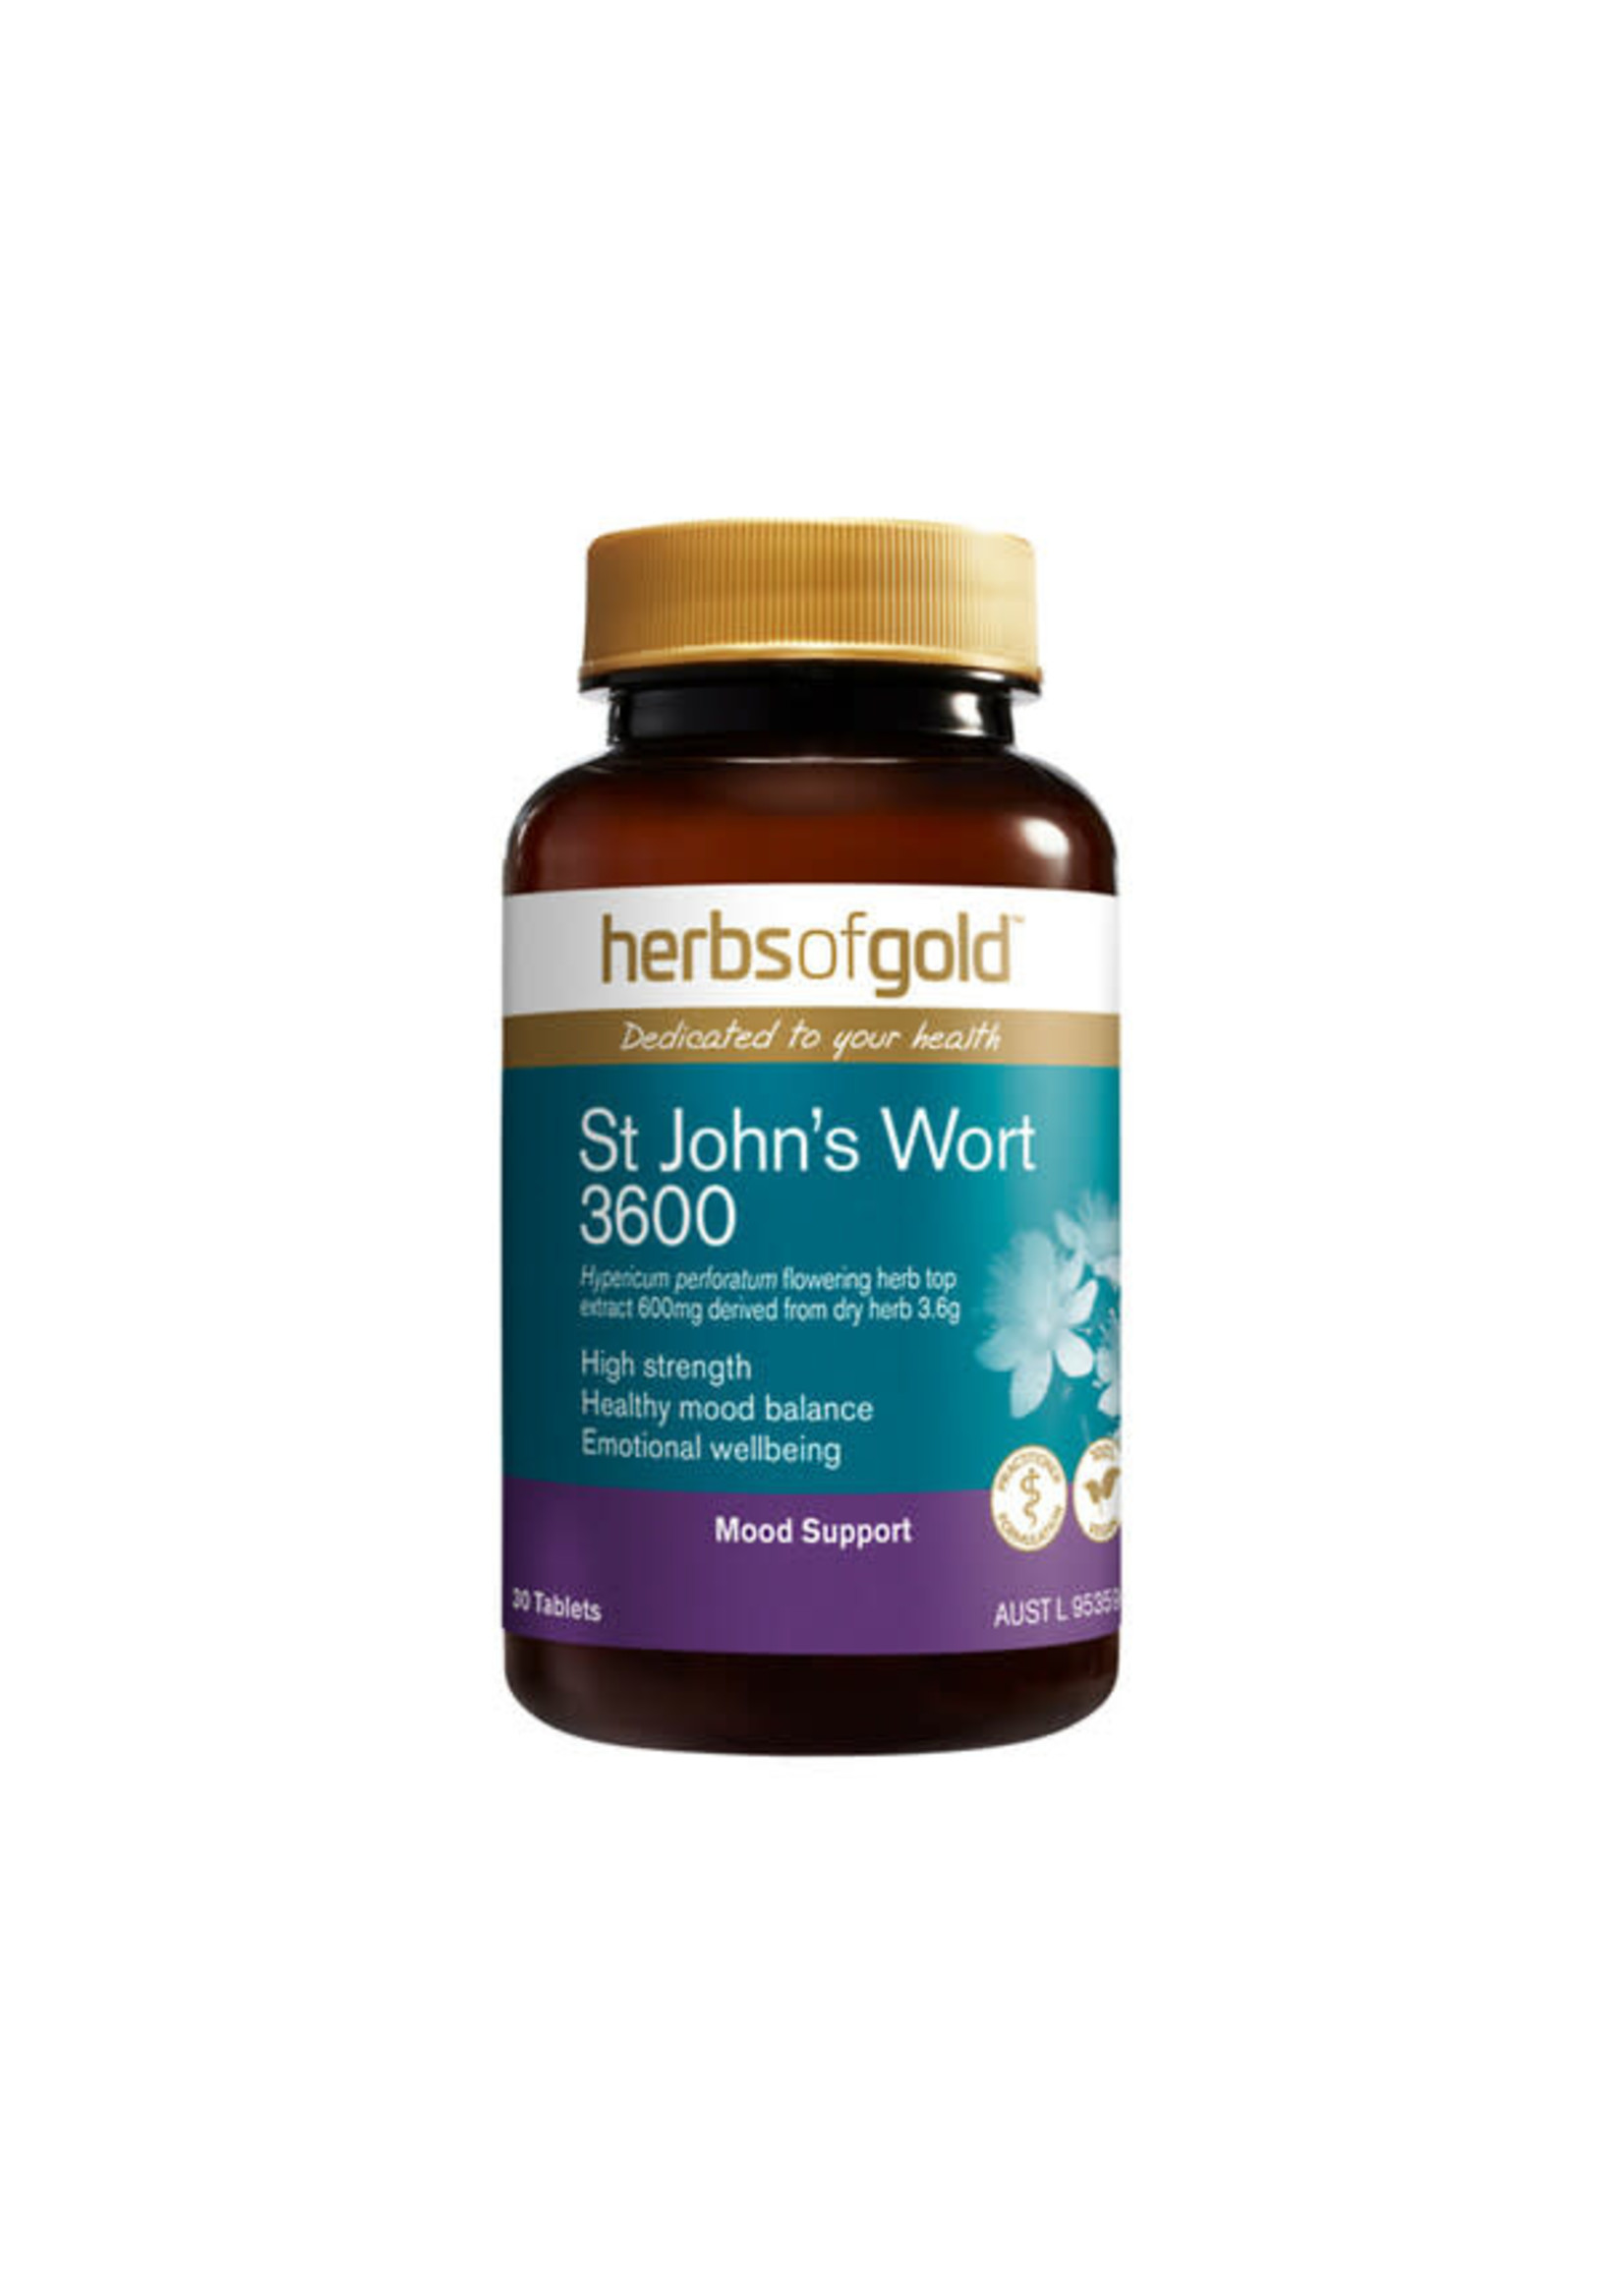 Herbs of Gold Herbs of Gold Extra Strength St Johns Wort 3600 30 tabs